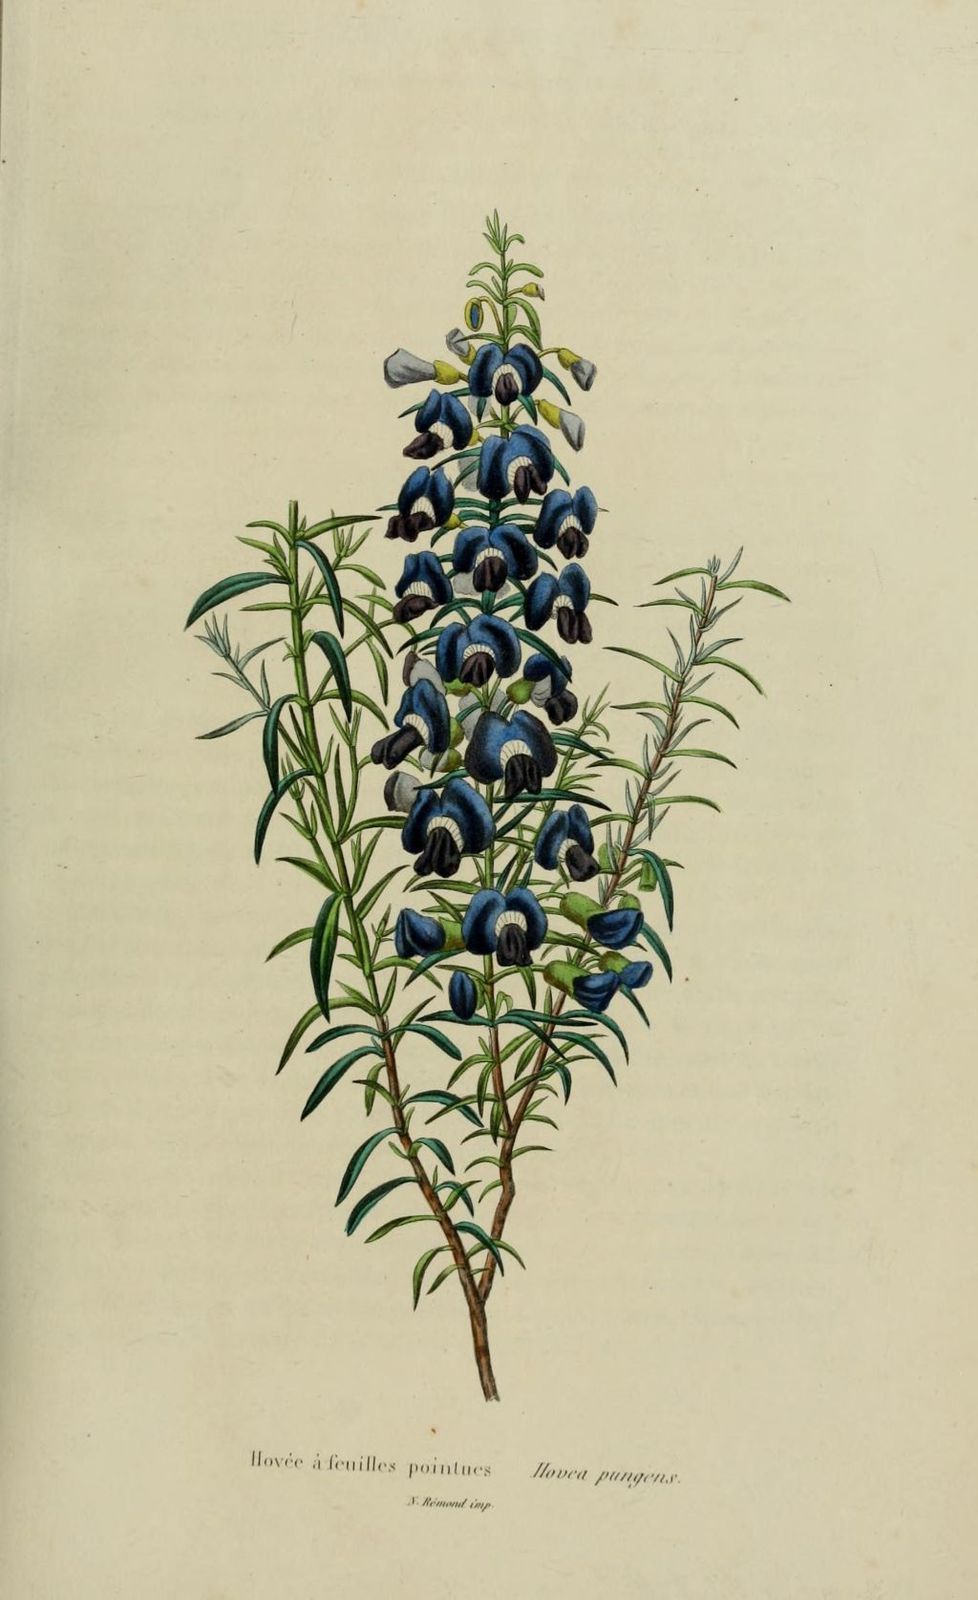 10061 hovee a feuilles pointues - hovea pungens